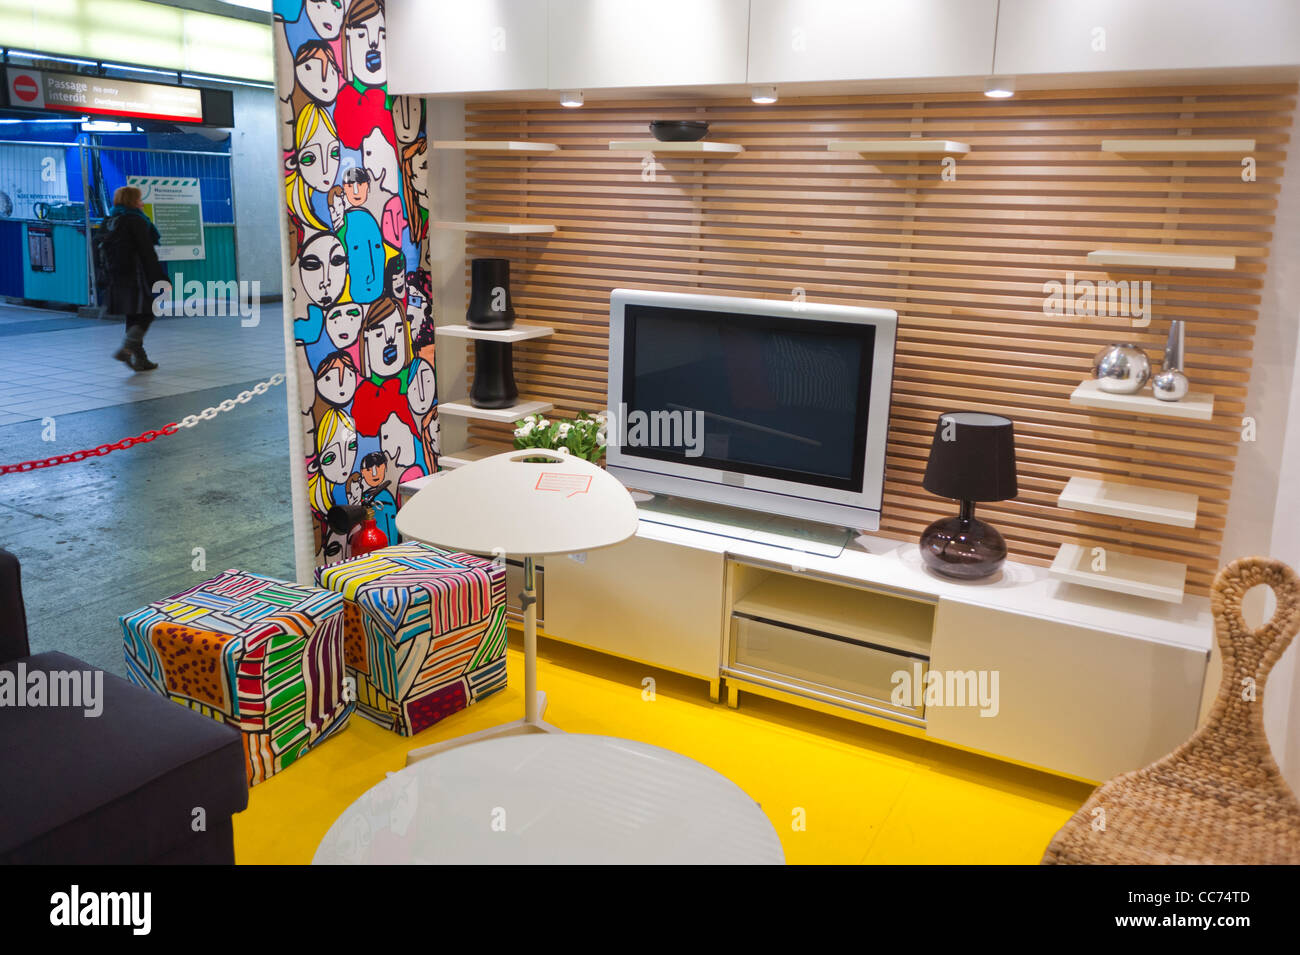 paris france unusual advertising furniture shopping ikea furniture stock photo 41954093 alamy. Black Bedroom Furniture Sets. Home Design Ideas